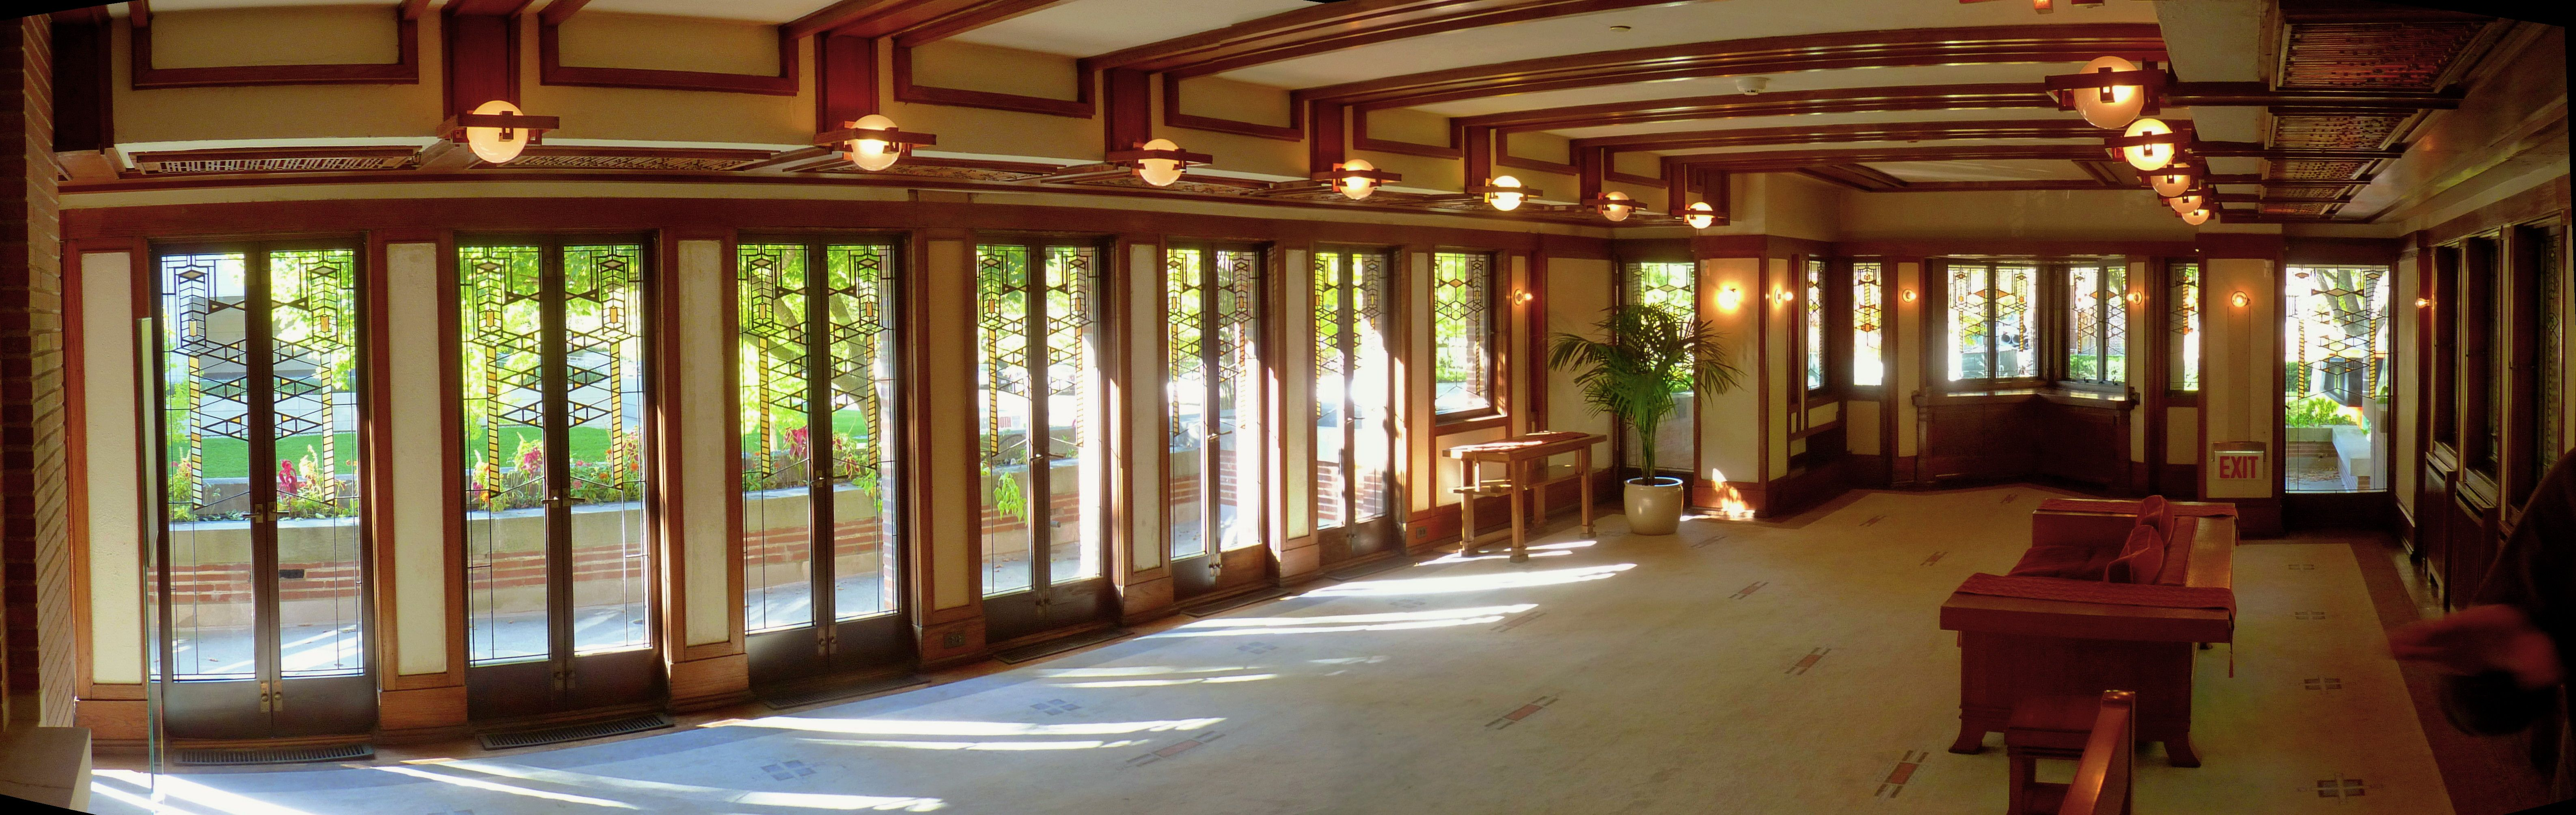 Robie house frank lloyd wright top hd images spaces